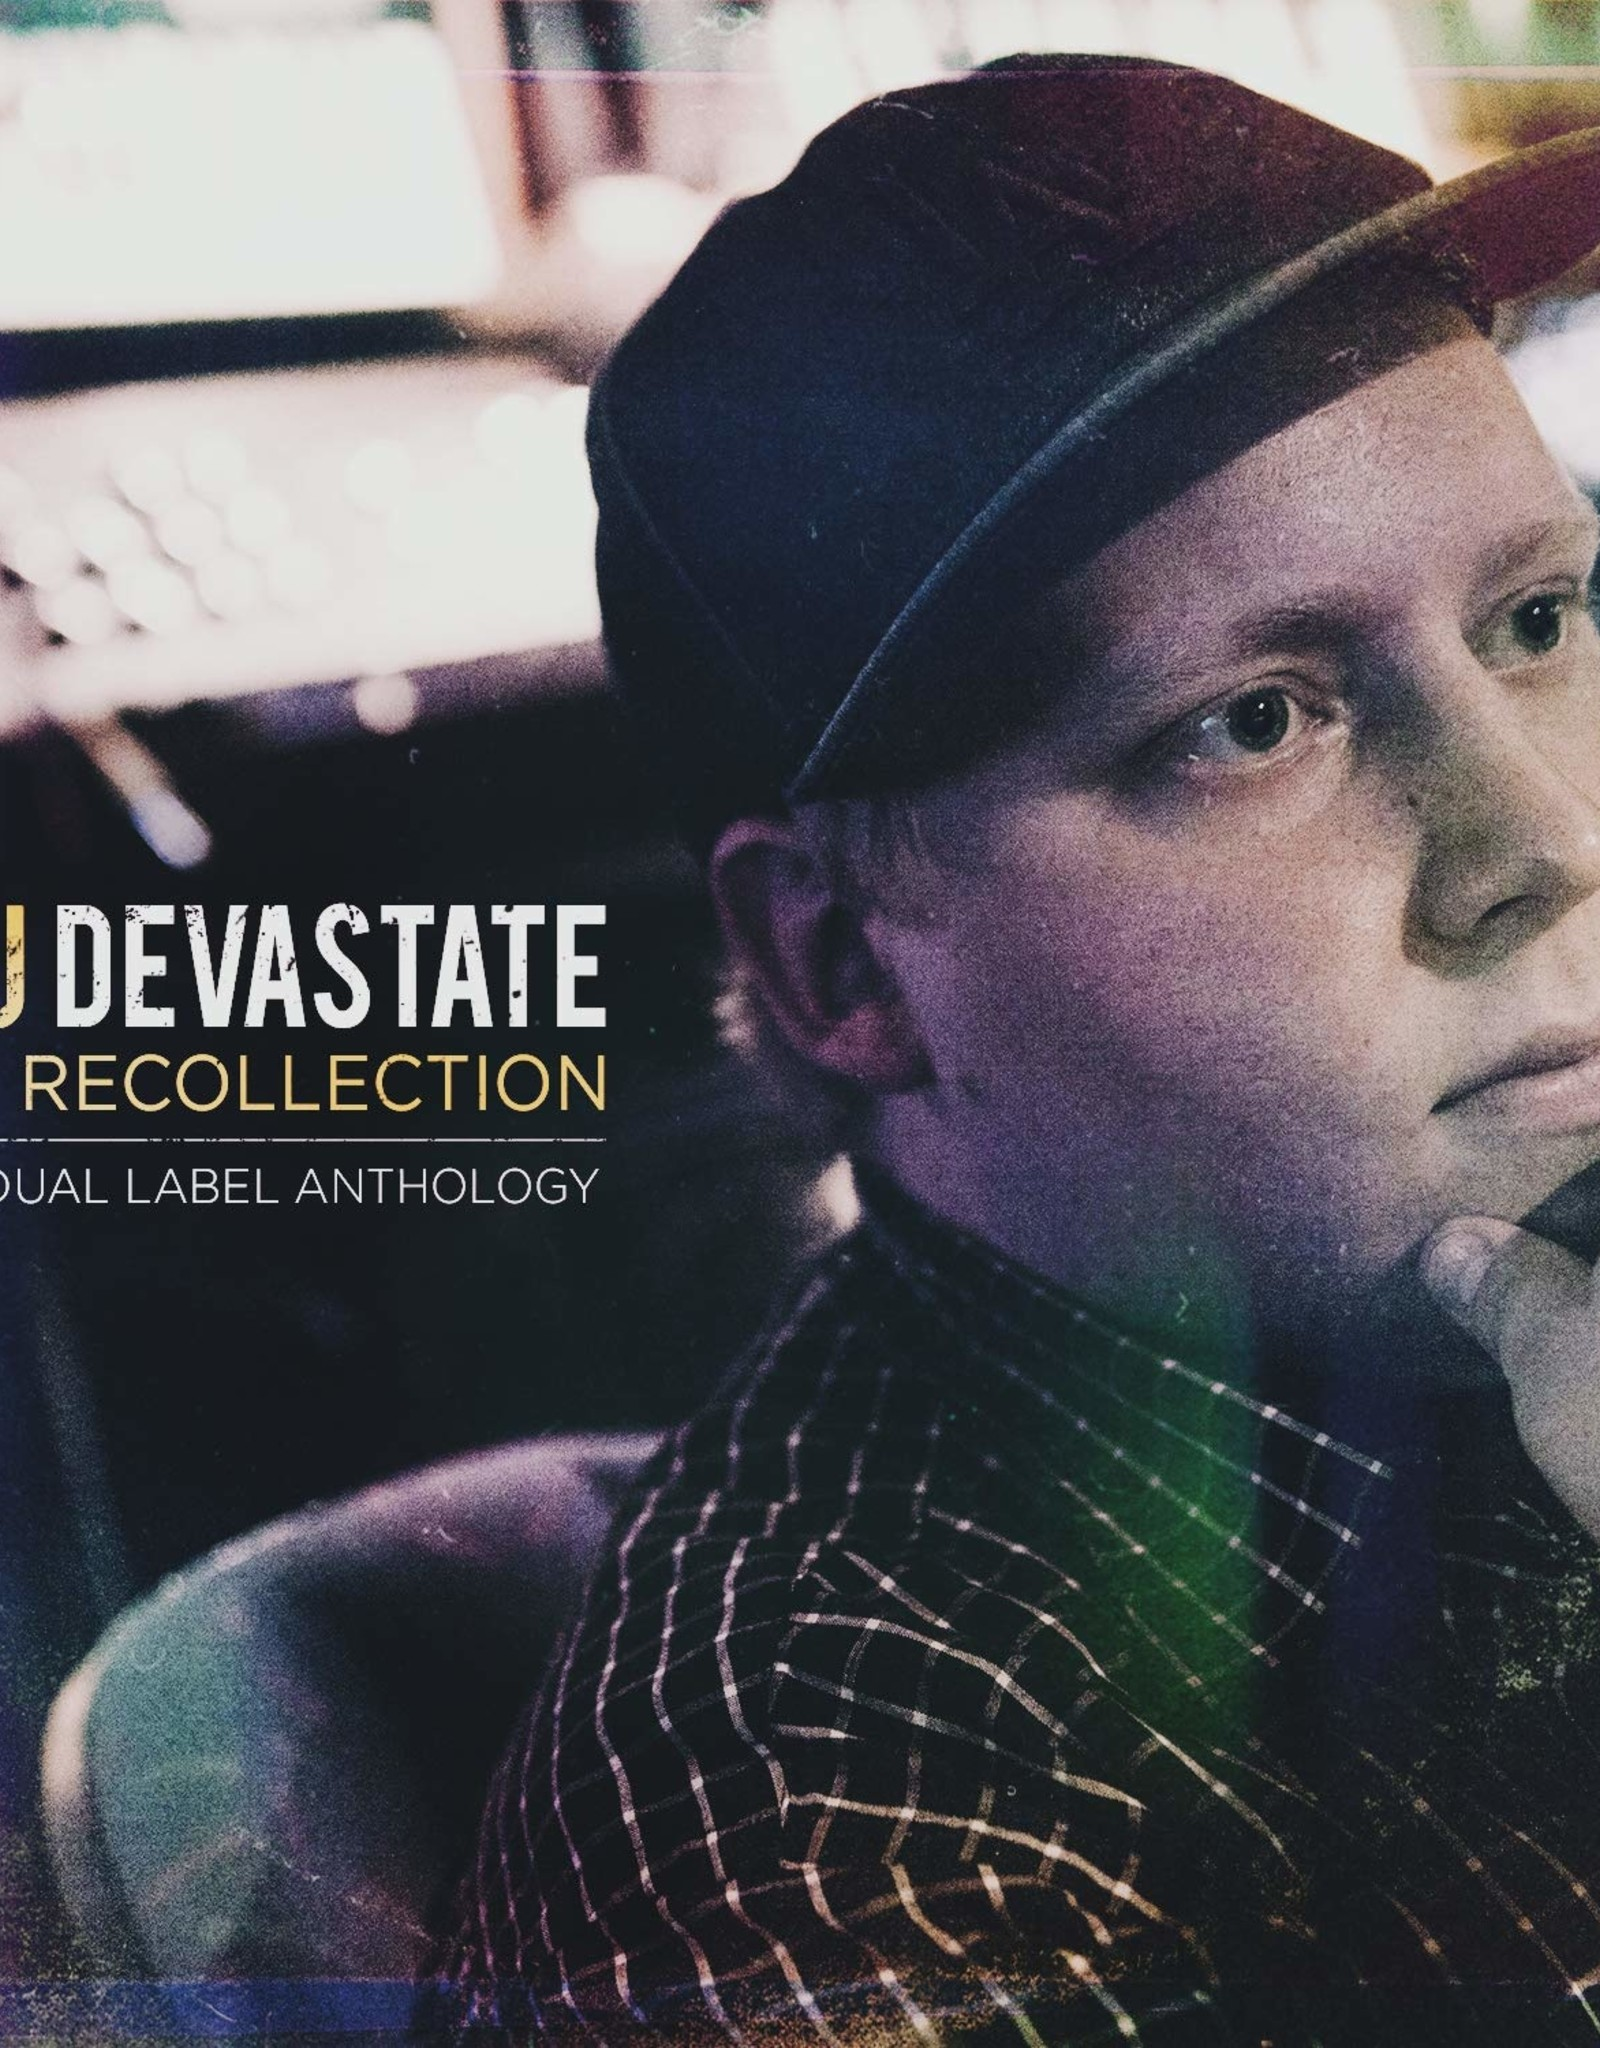 Dj Devastate - In Recollection: Dual Label Anthology (2012-2018) (RSD 2018)